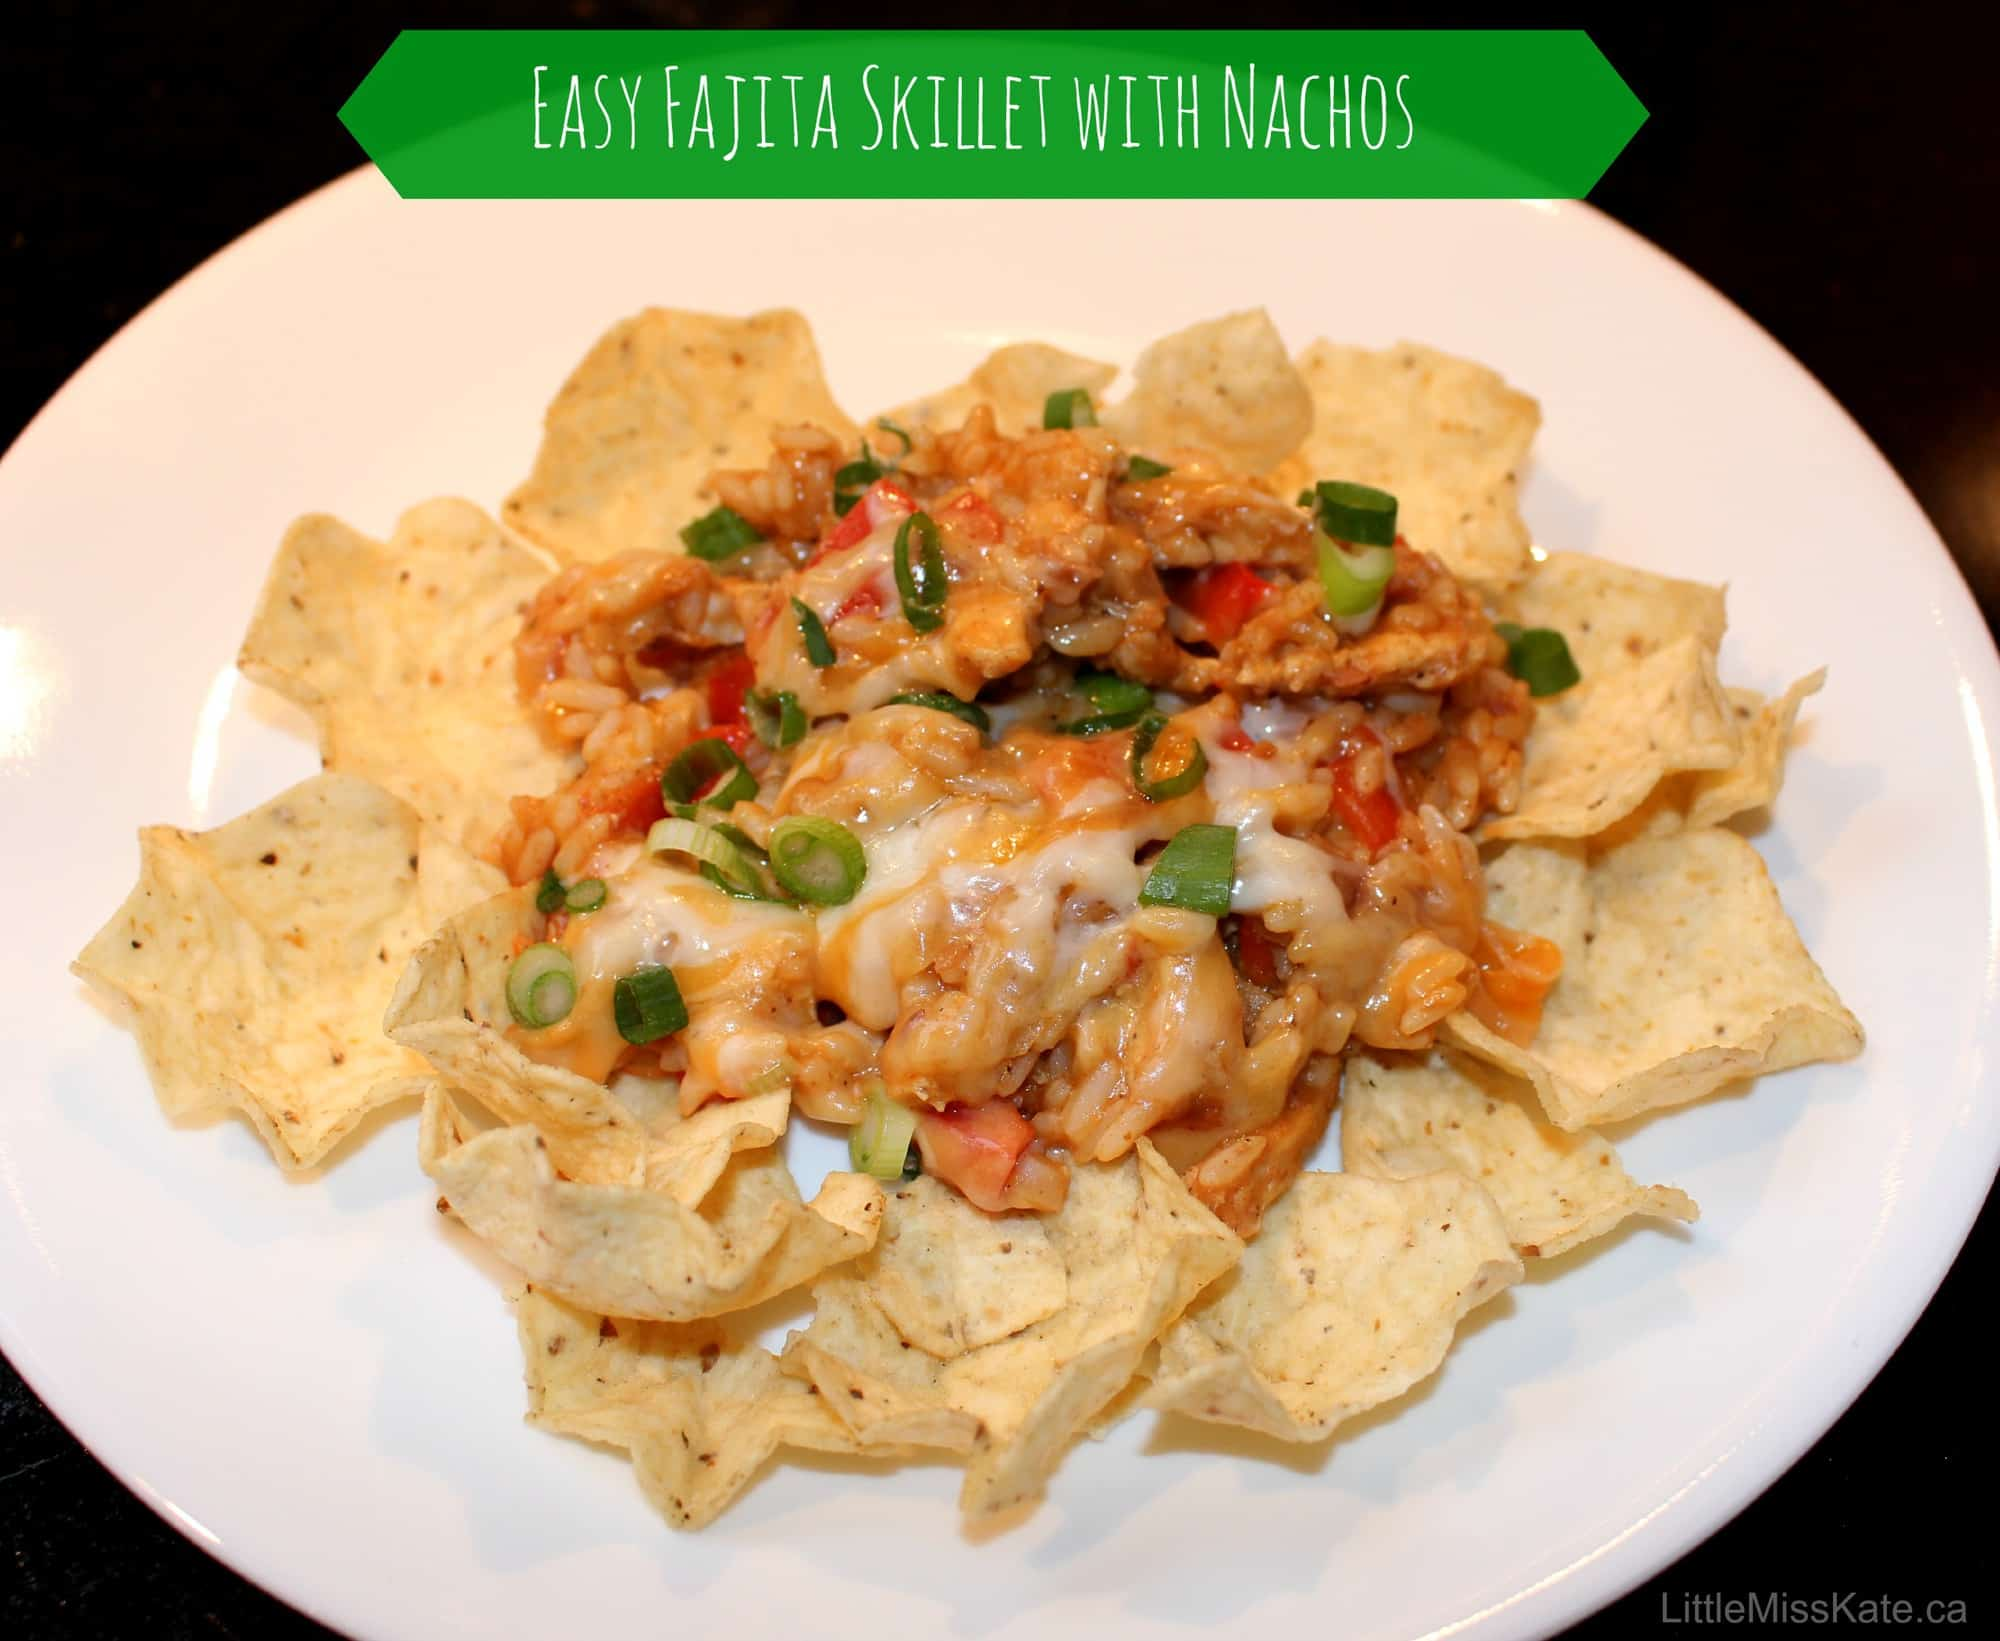 Spice up your Nachos with this Fajita Skillet Recipe from Uncle Ben's #Bensbeginners